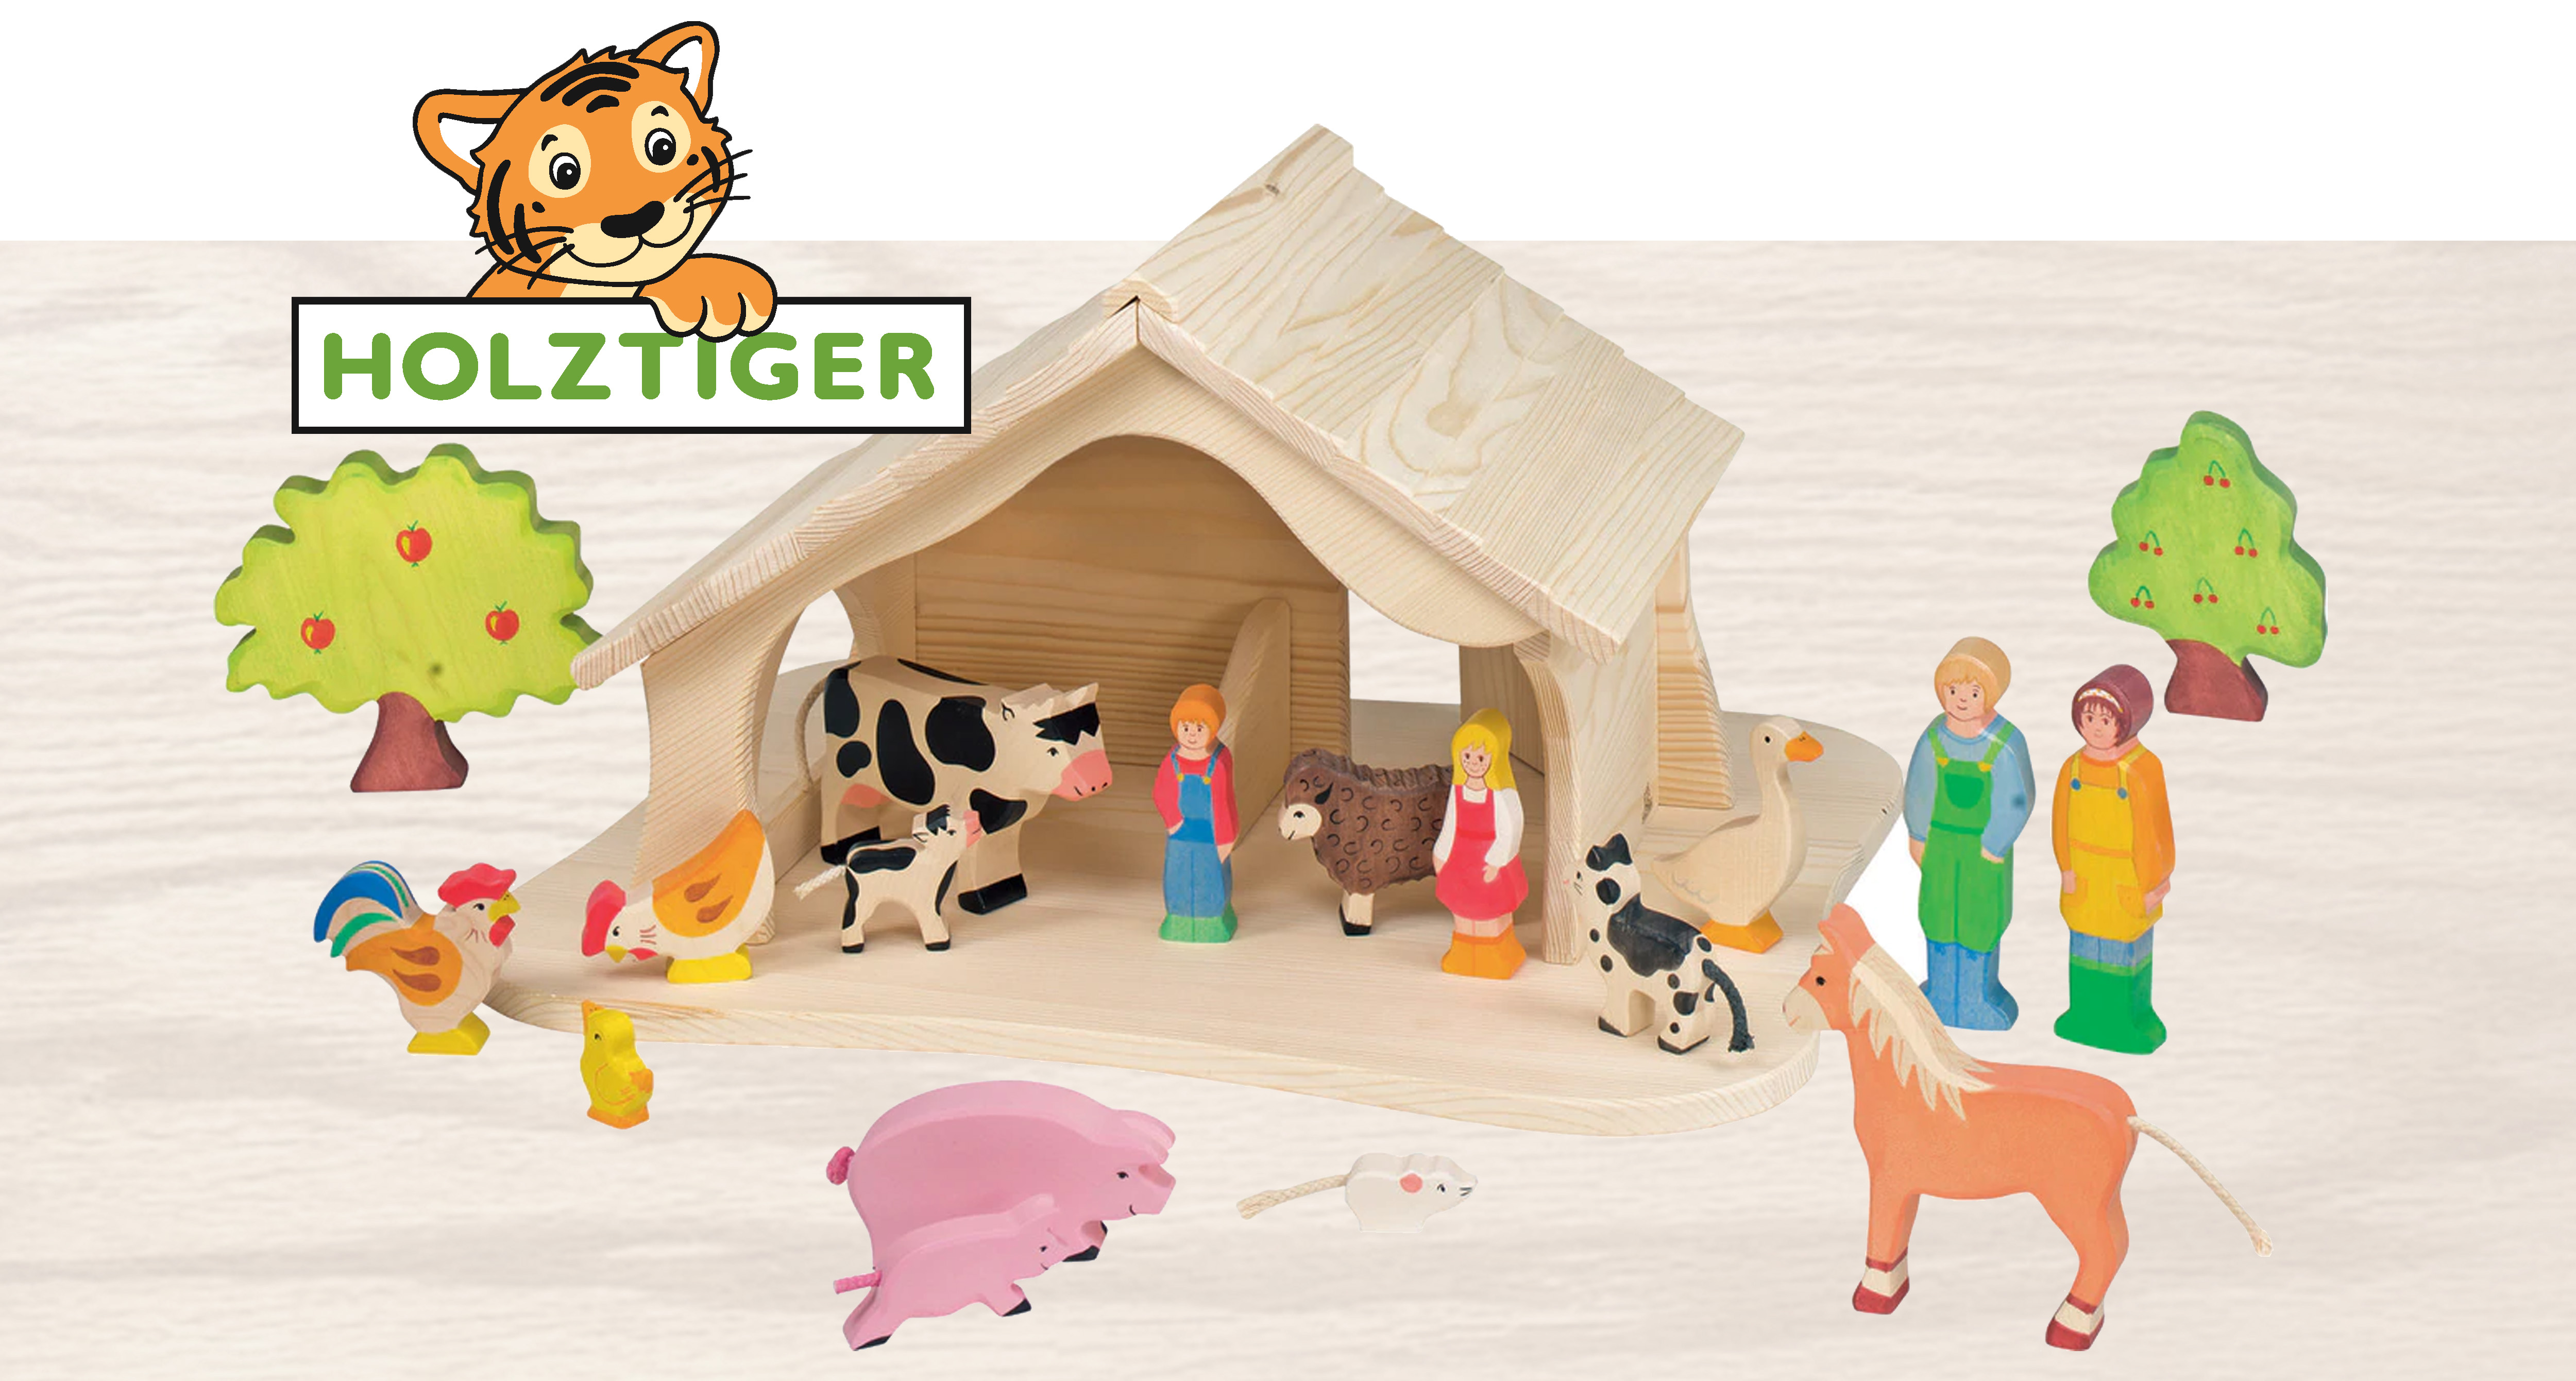 Holztiger wooden toy figurines